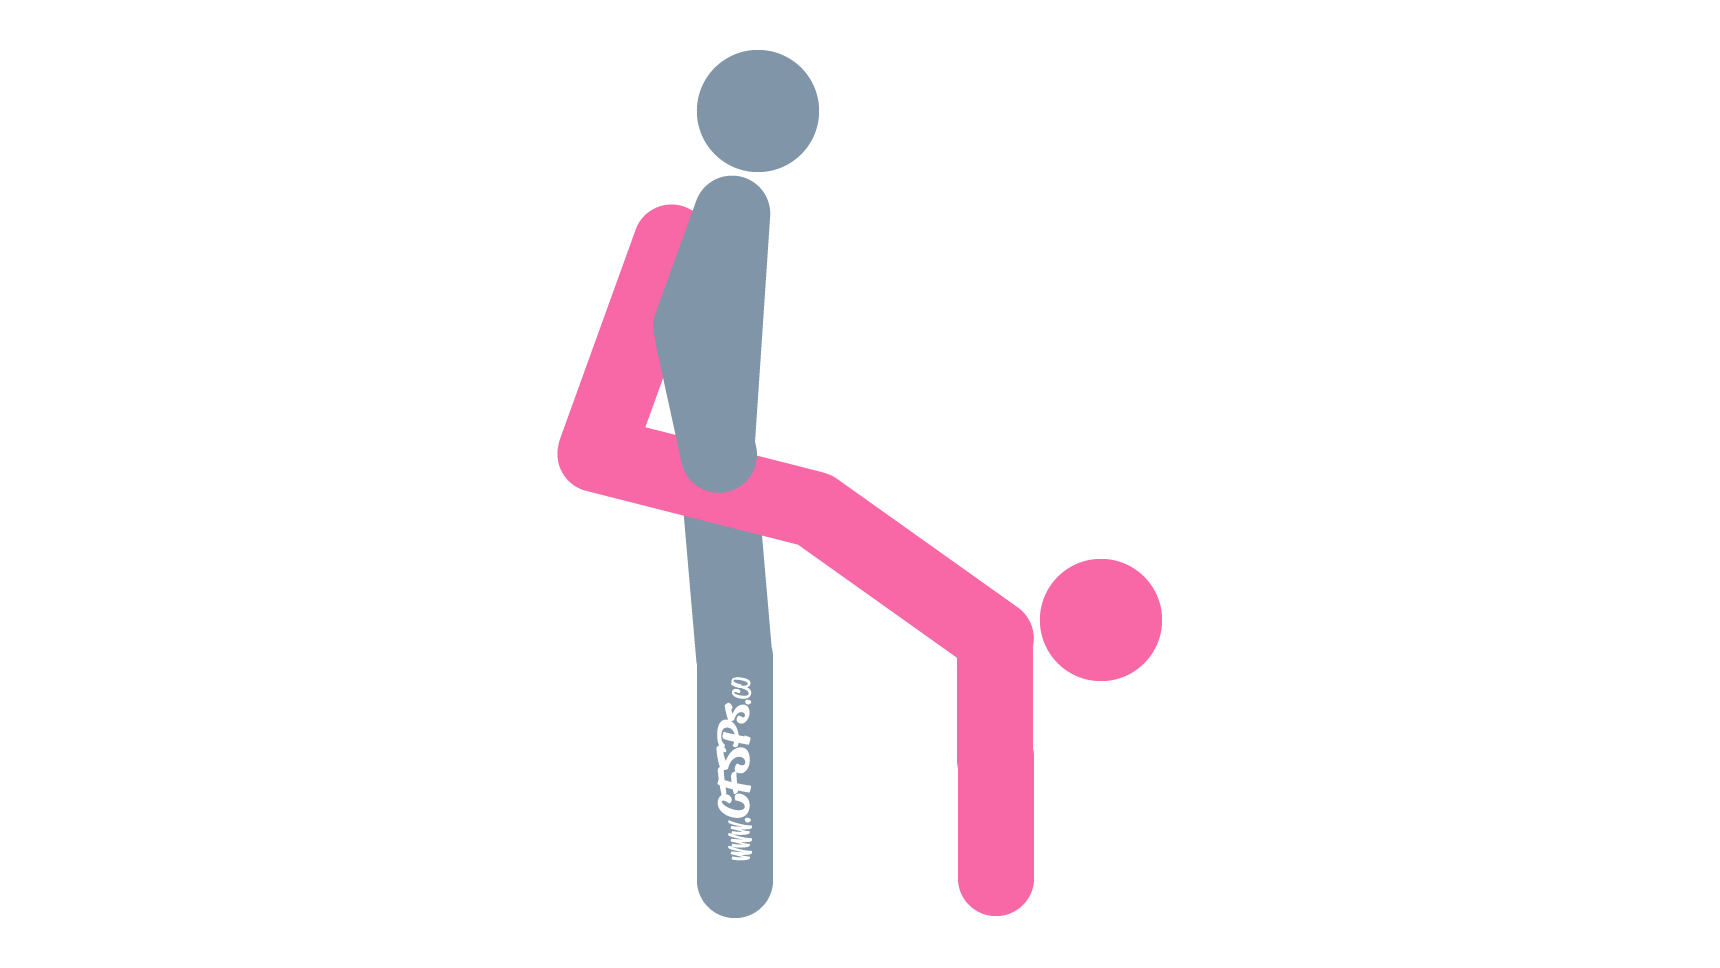 An illustration of the Indian Headstand sex position. This picture demonstrates how Indian Headstand is a difficult, standing sex position with deep penetration and great g-spot stimulation.